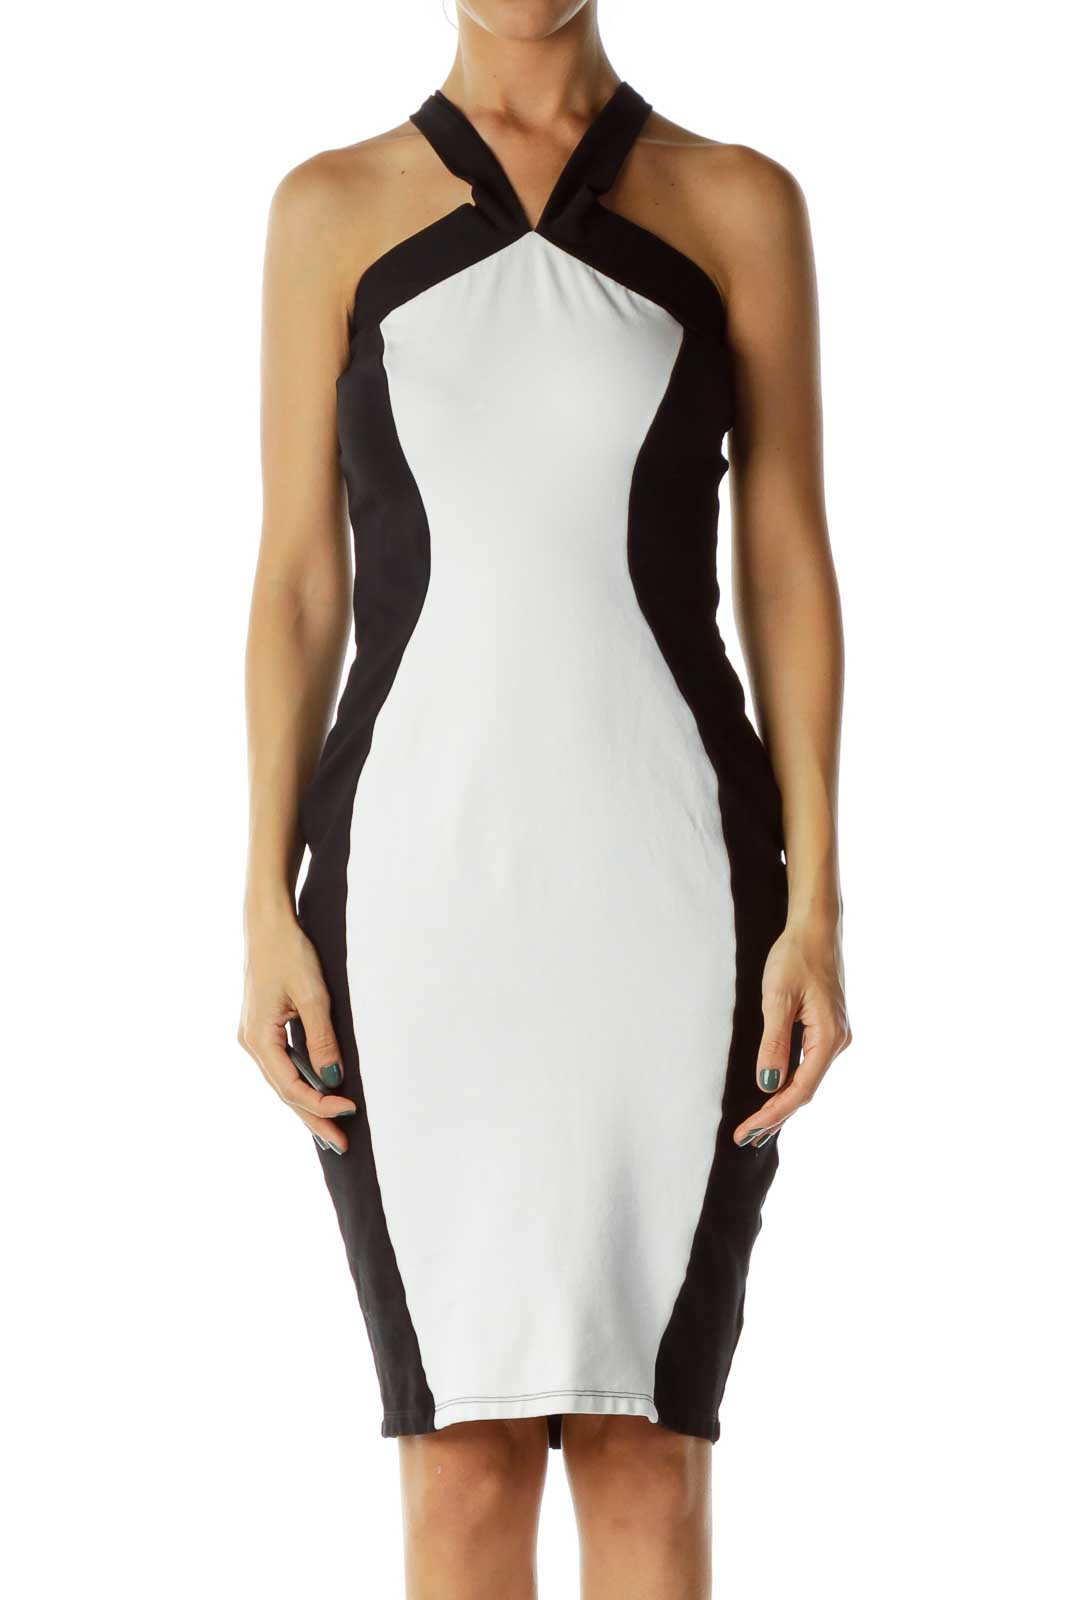 Black/White Criss-Cross Bodycon Dress